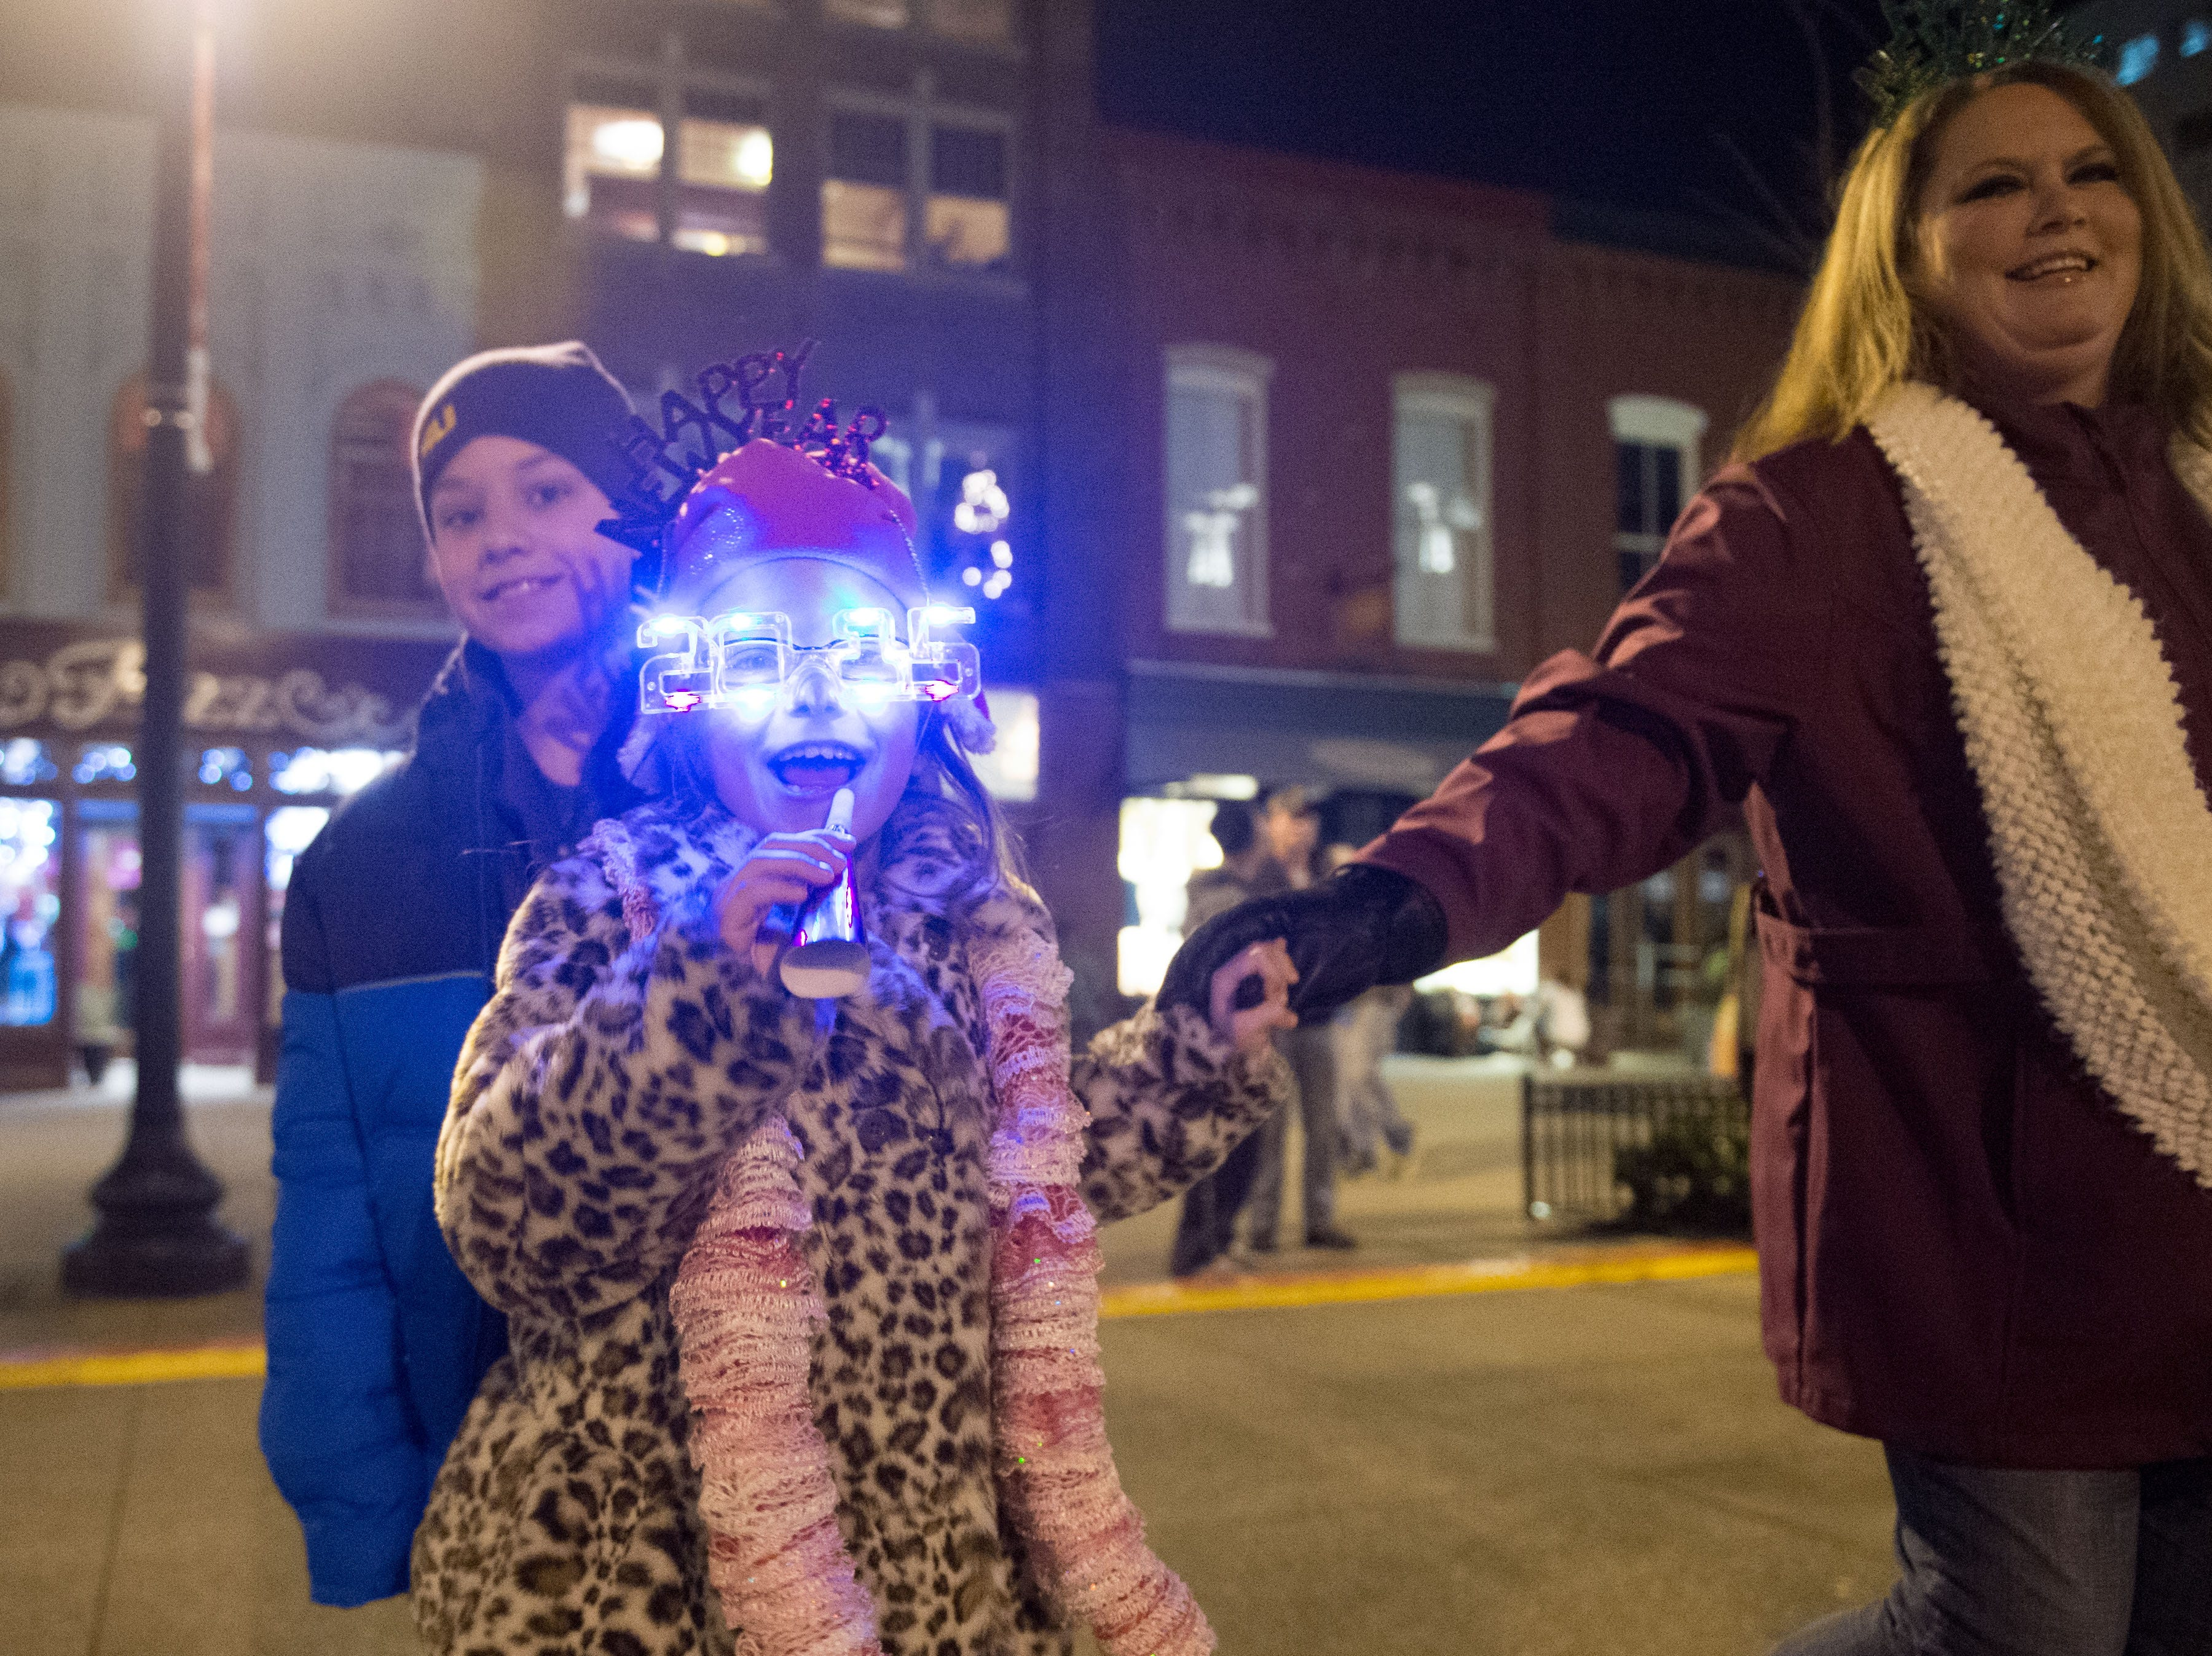 Robin Griffin and her children, Blayne, 10, left, and Bentlie, 9, celebrate New Year's Eve at Market Square on Wednesday, December 31, 2014.